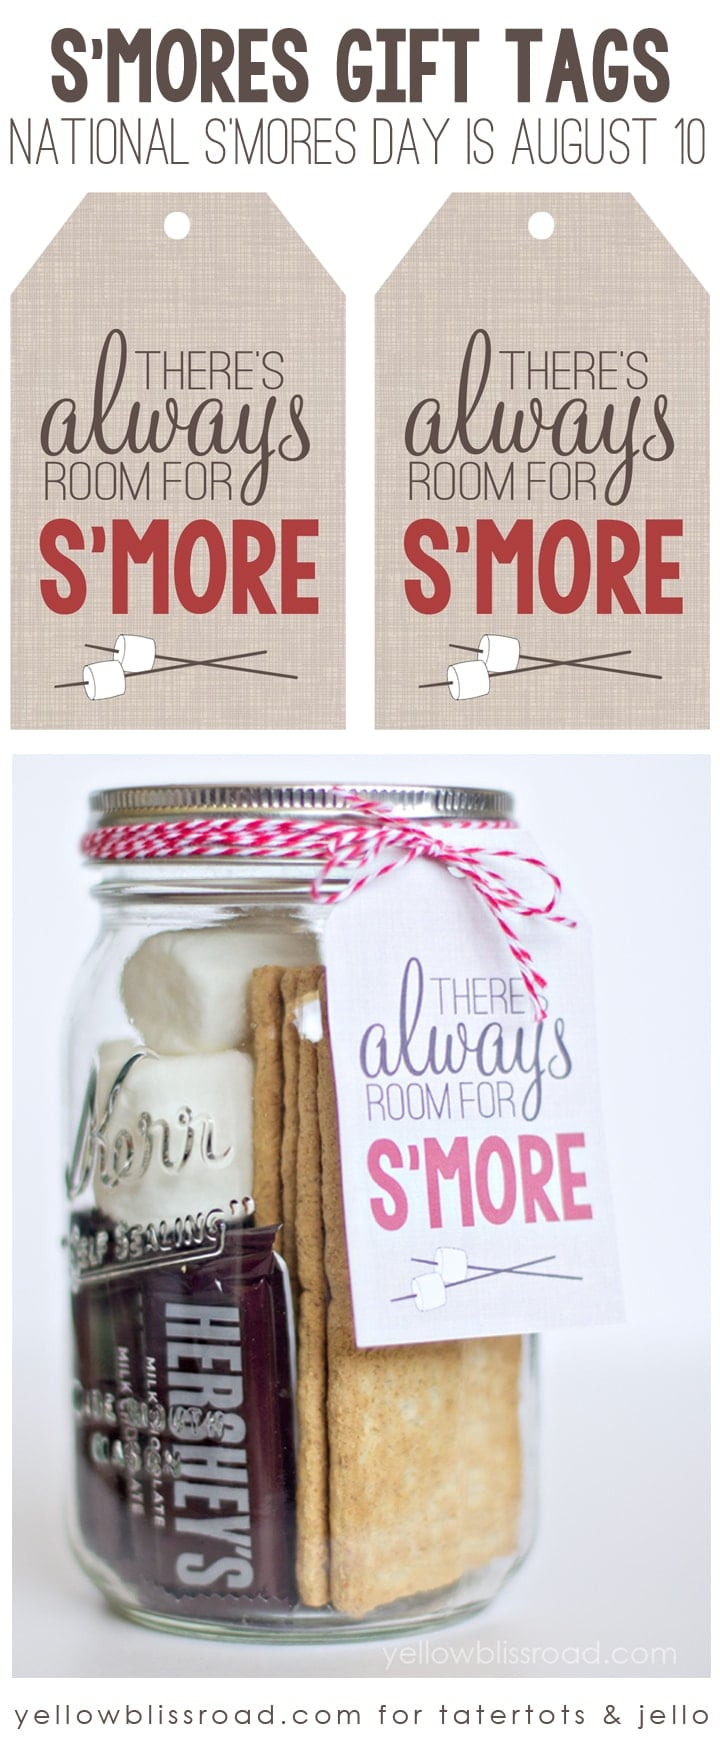 There's always room for s'more graphic